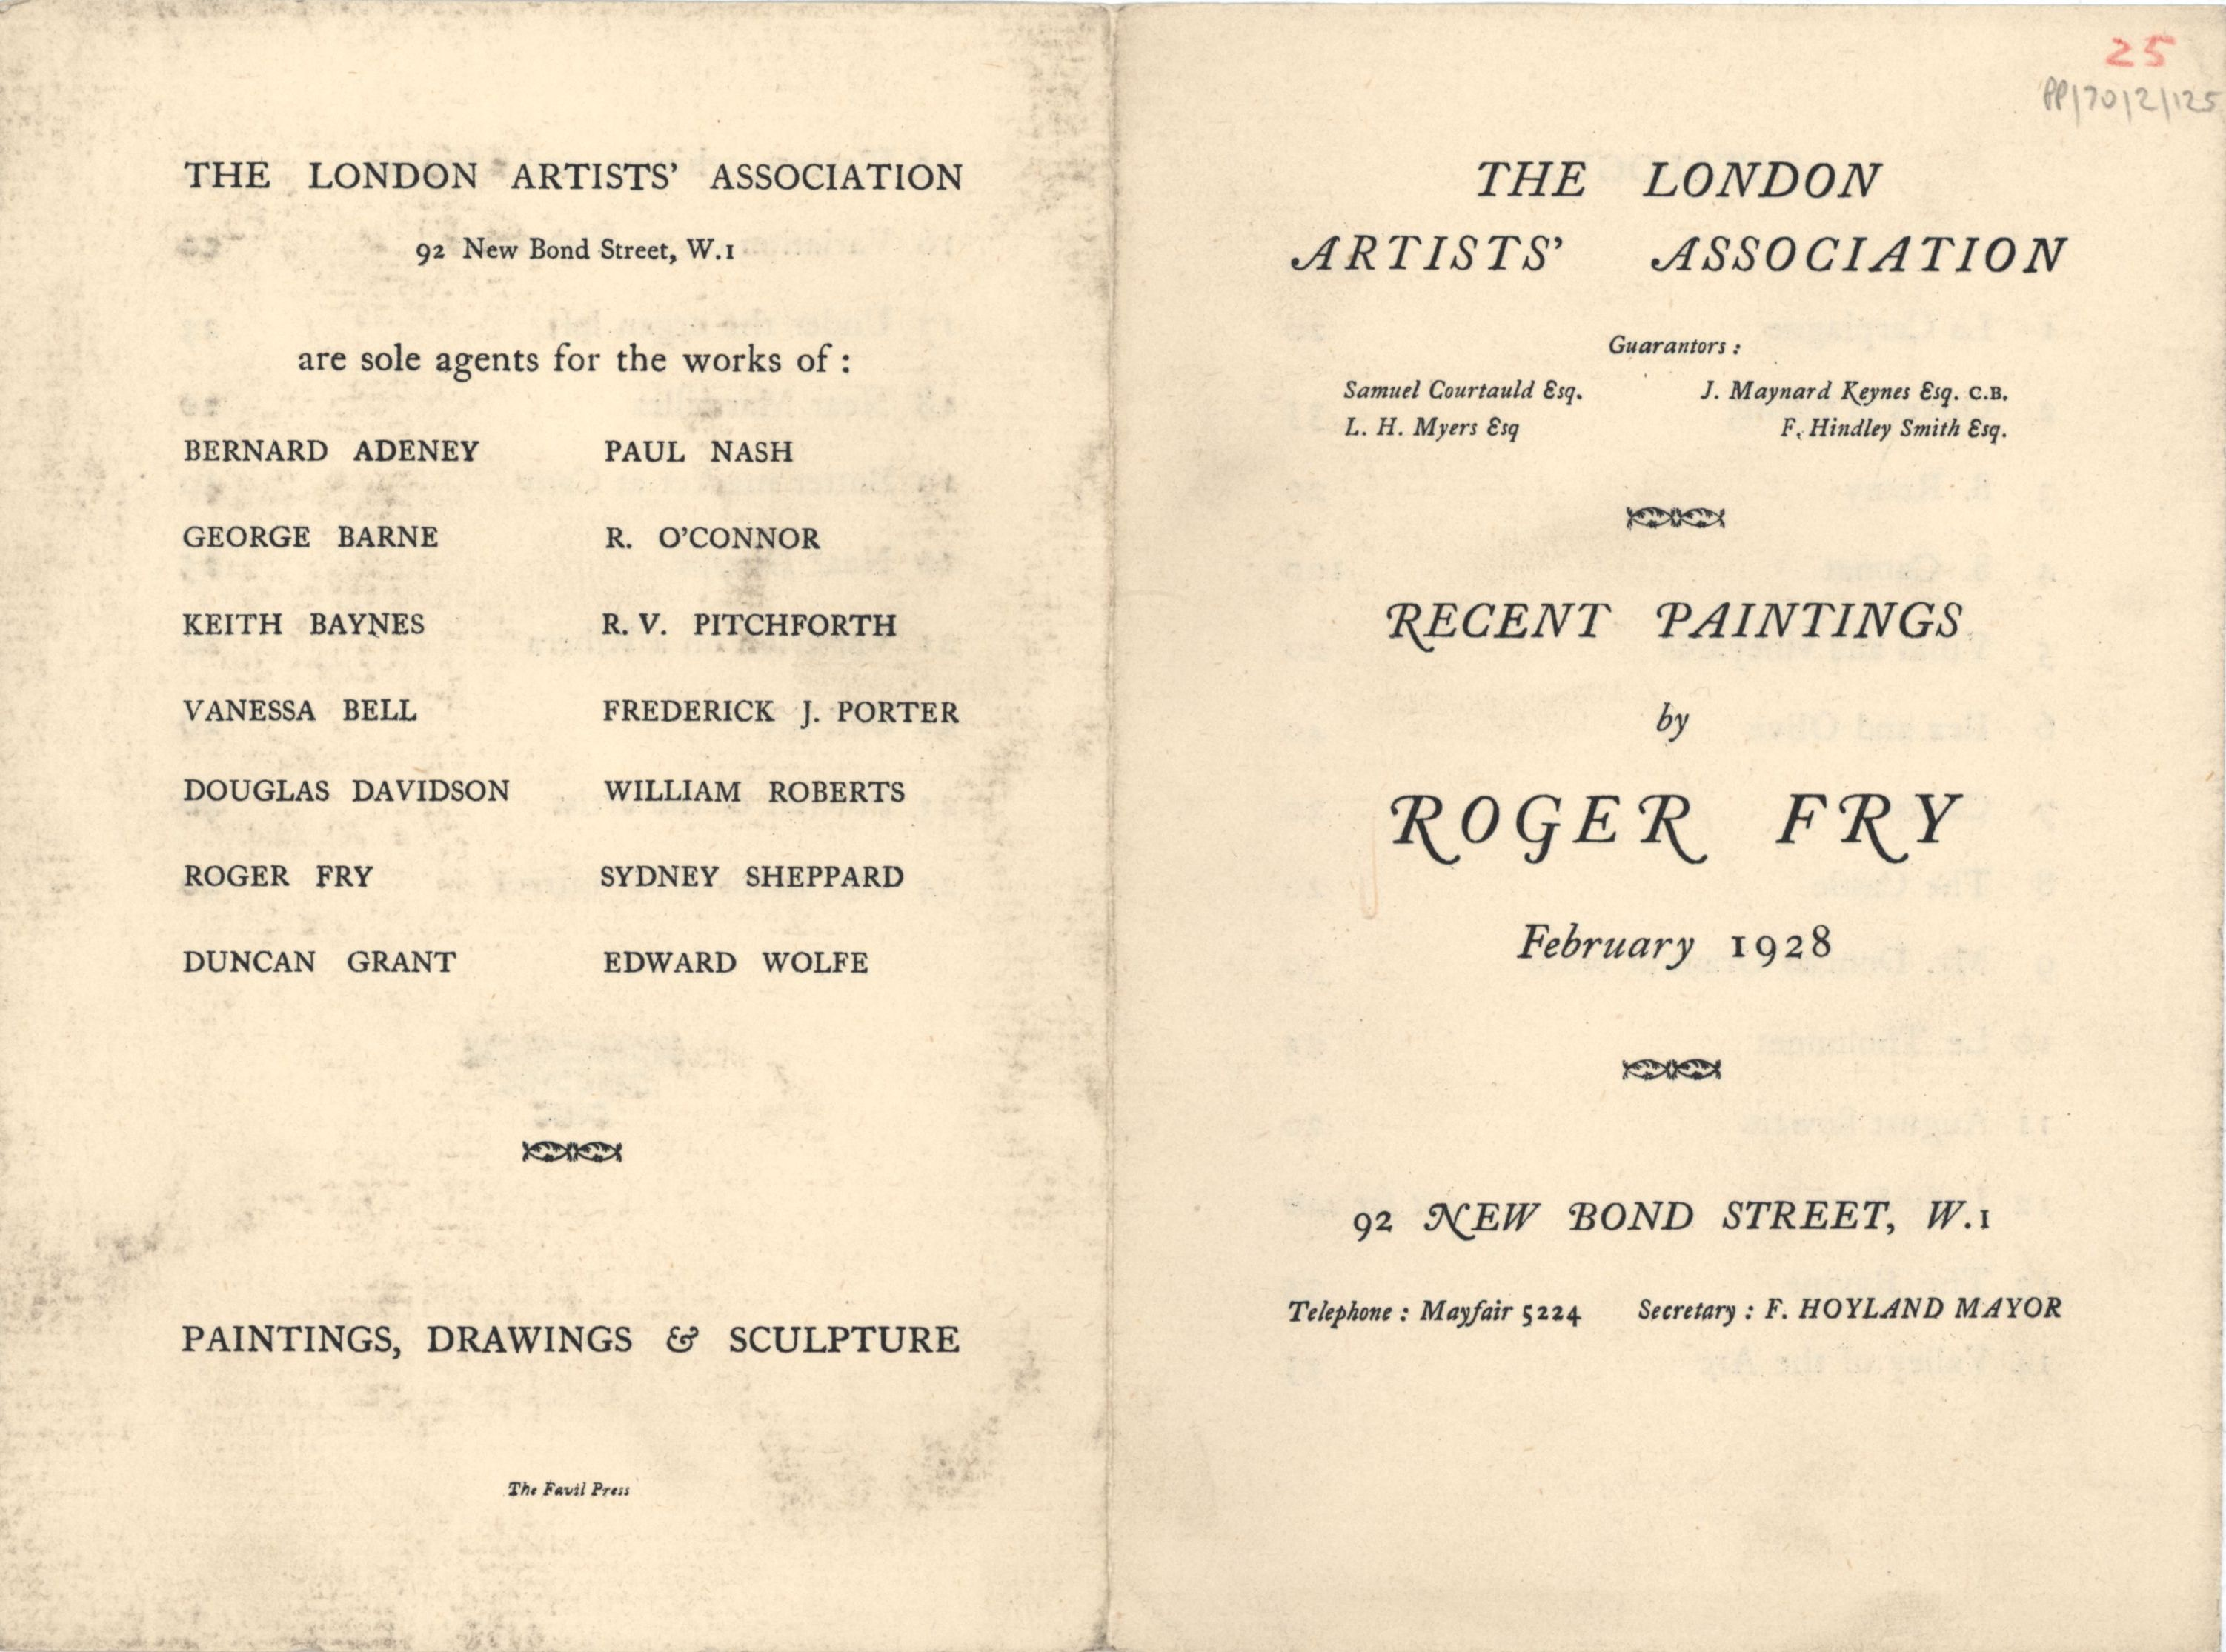 'ROGER FRY, recent paintings', London Artists' Association exhibition catalogue, February 1928. [JMK/PP/70/2]